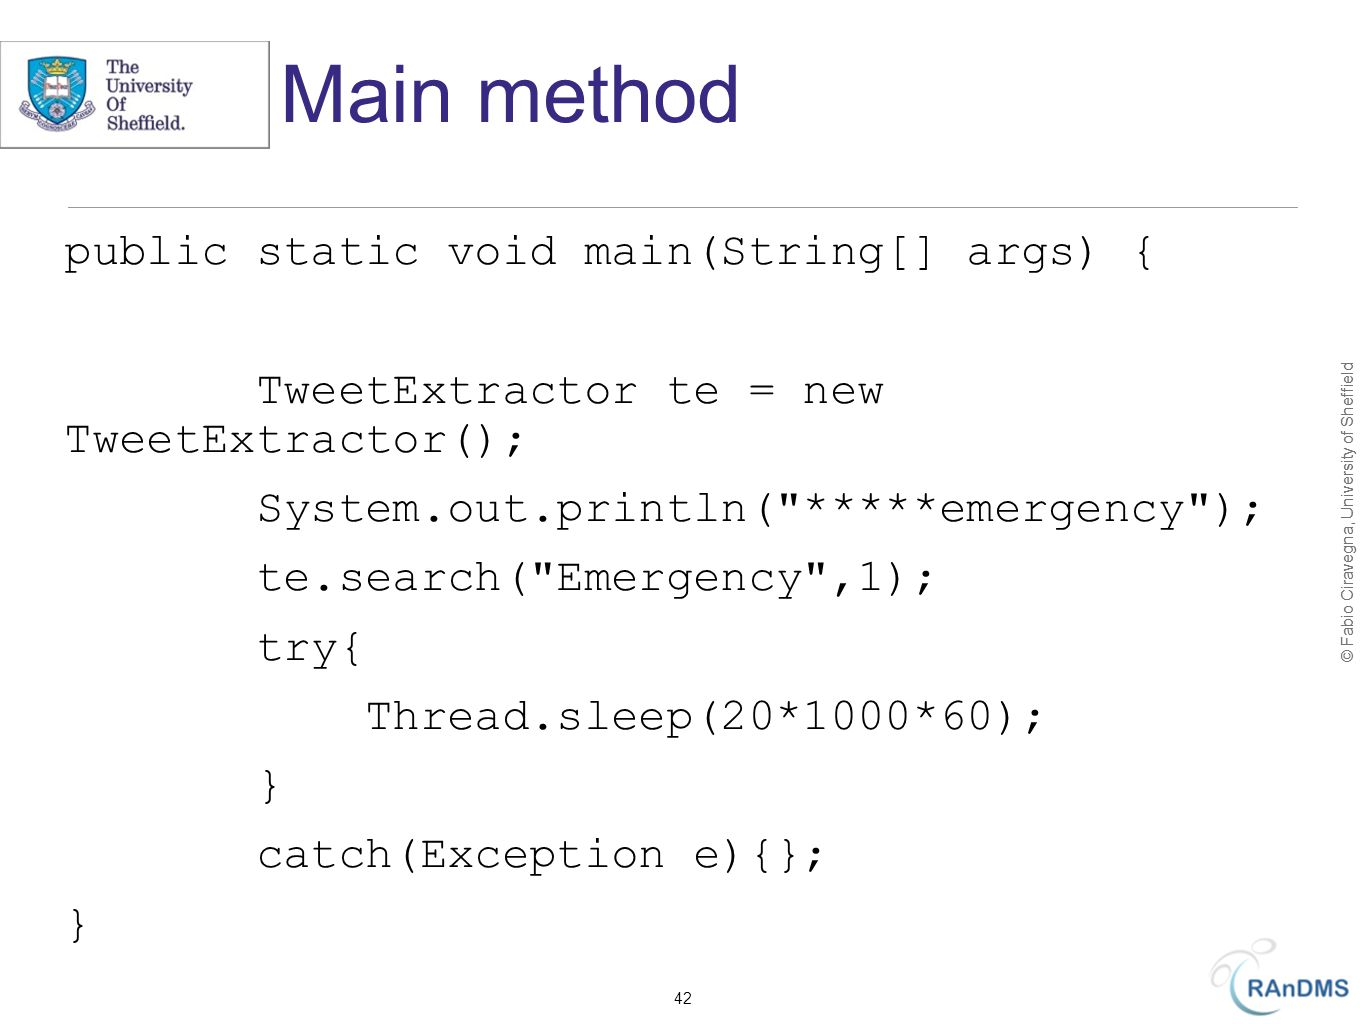 © Fabio Ciravegna, University of Sheffield Main method public static void main(String[] args) { TweetExtractor te = new TweetExtractor(); System.out.println( *****emergency ); te.search( Emergency ,1); try{ Thread.sleep(20*1000*60); } catch(Exception e){}; } 42